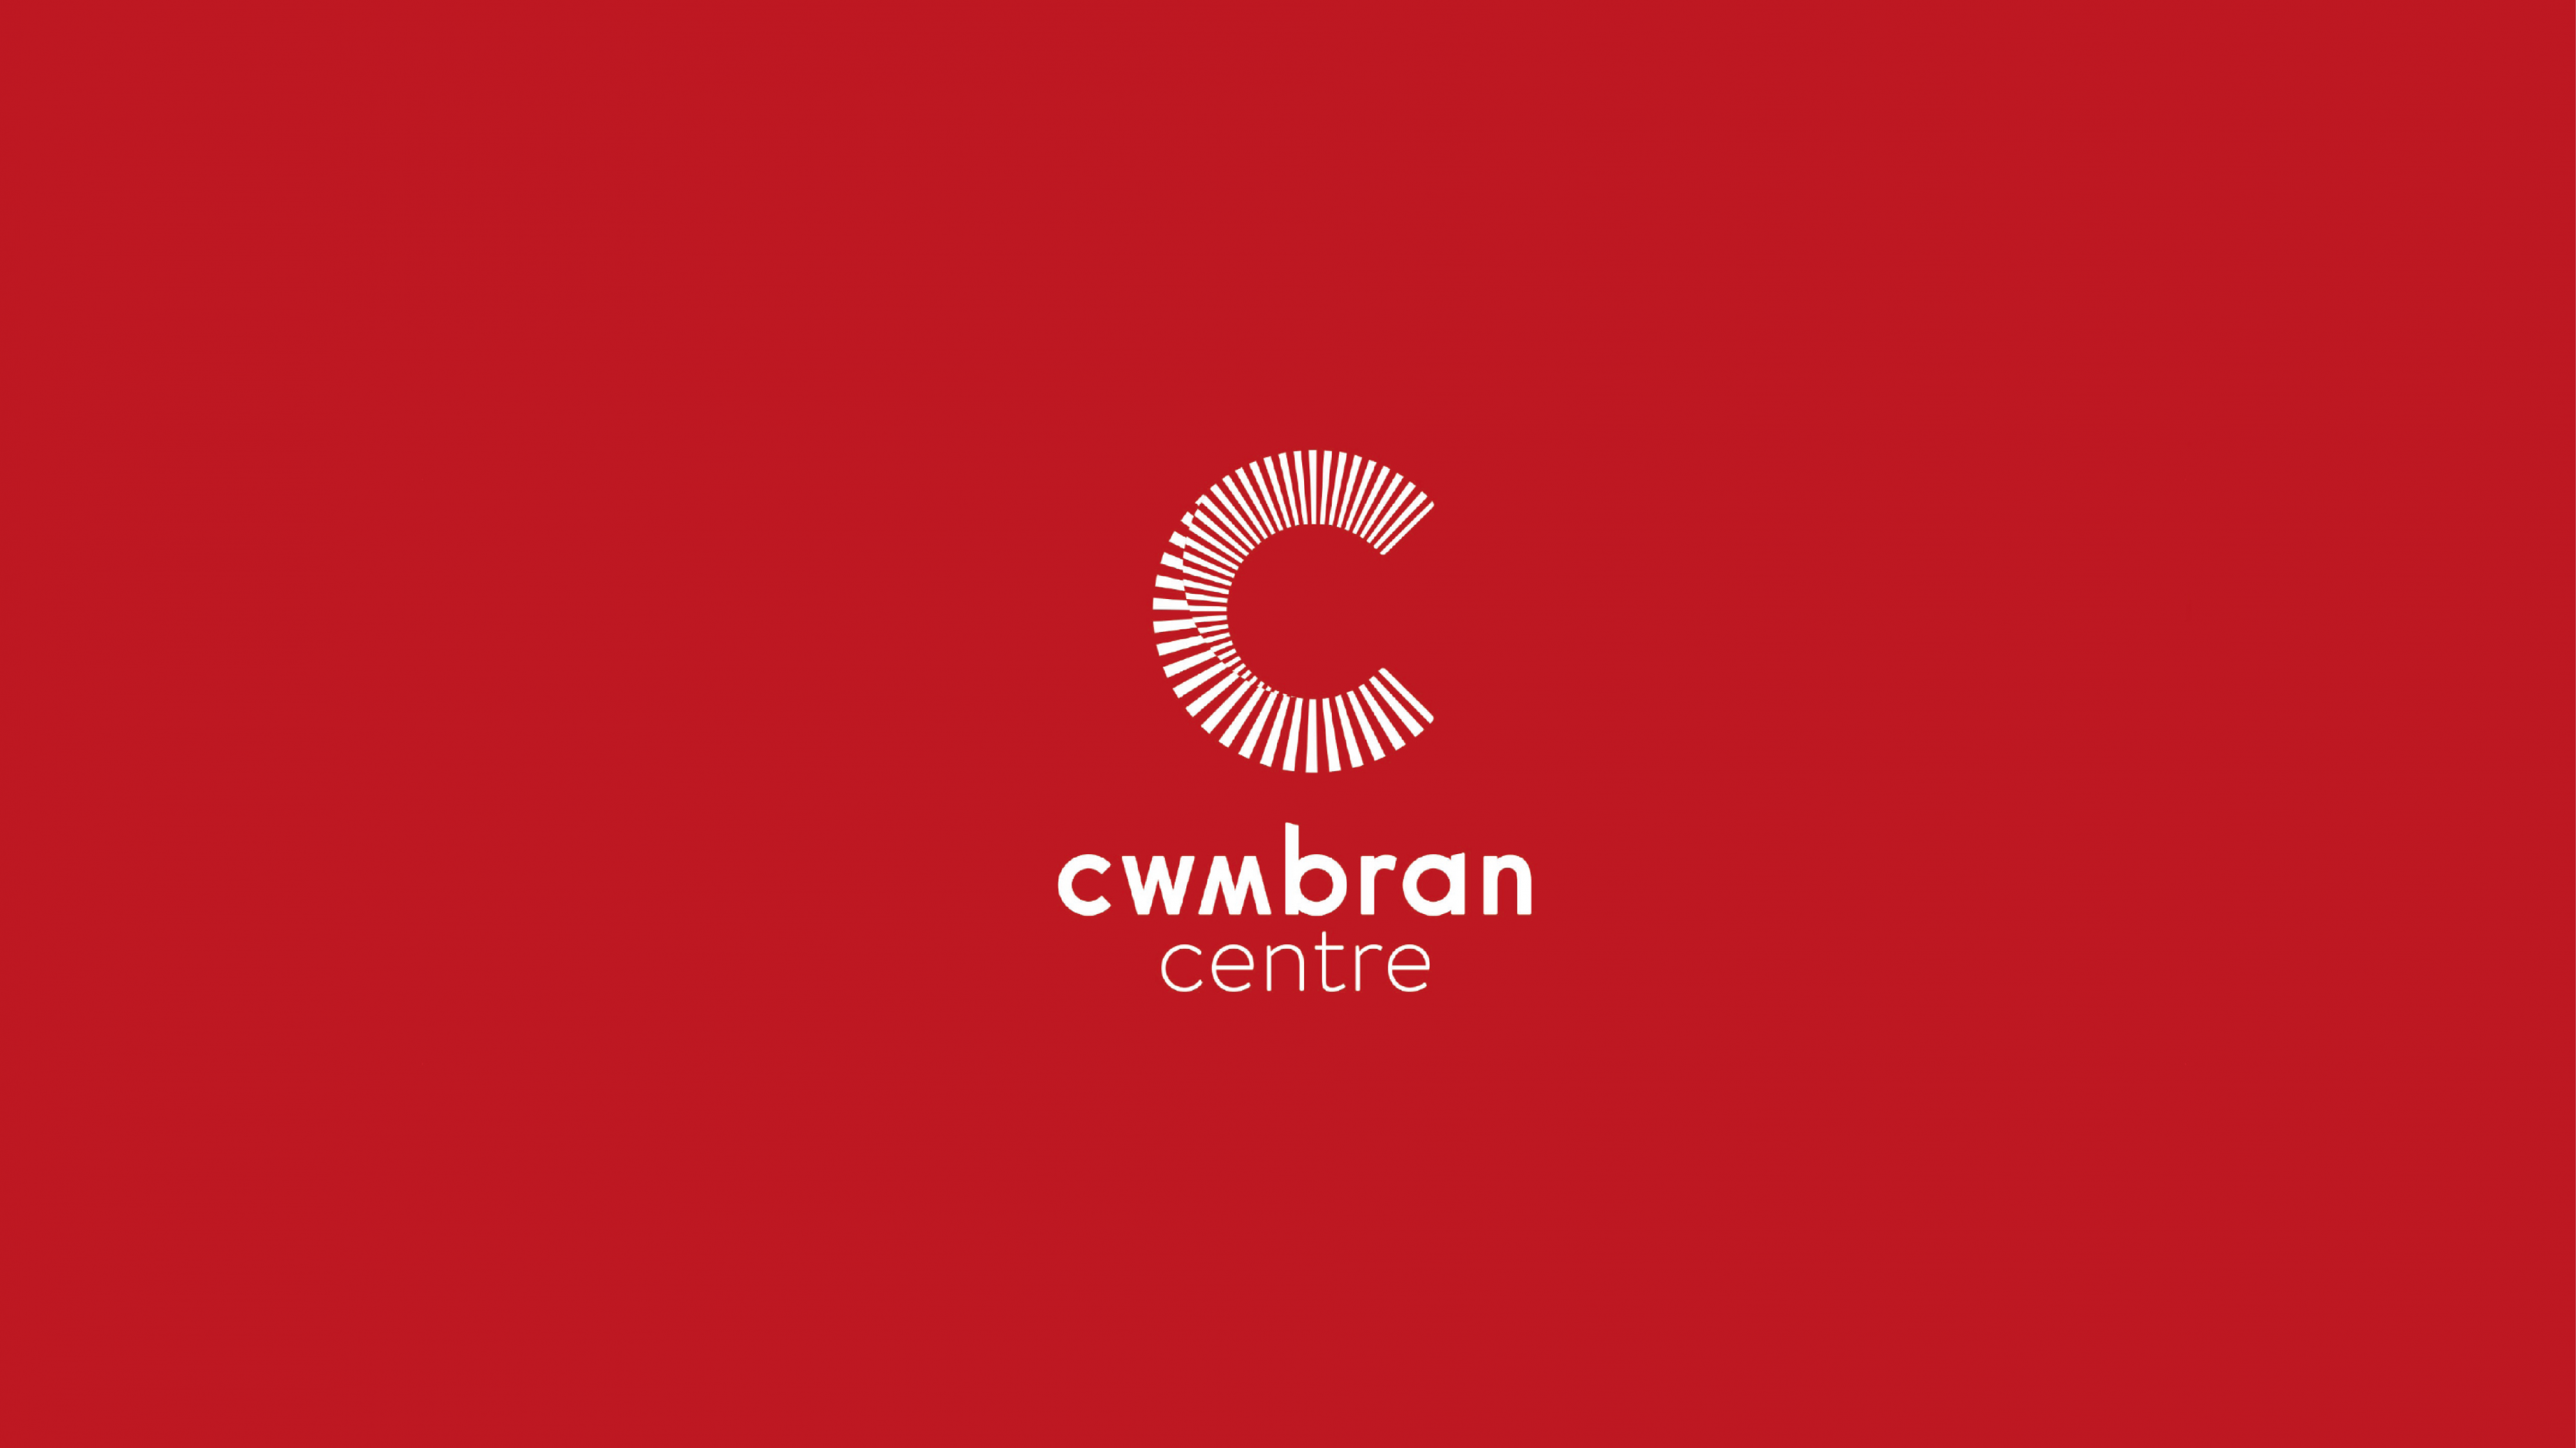 Cwmbran logo smaller on red